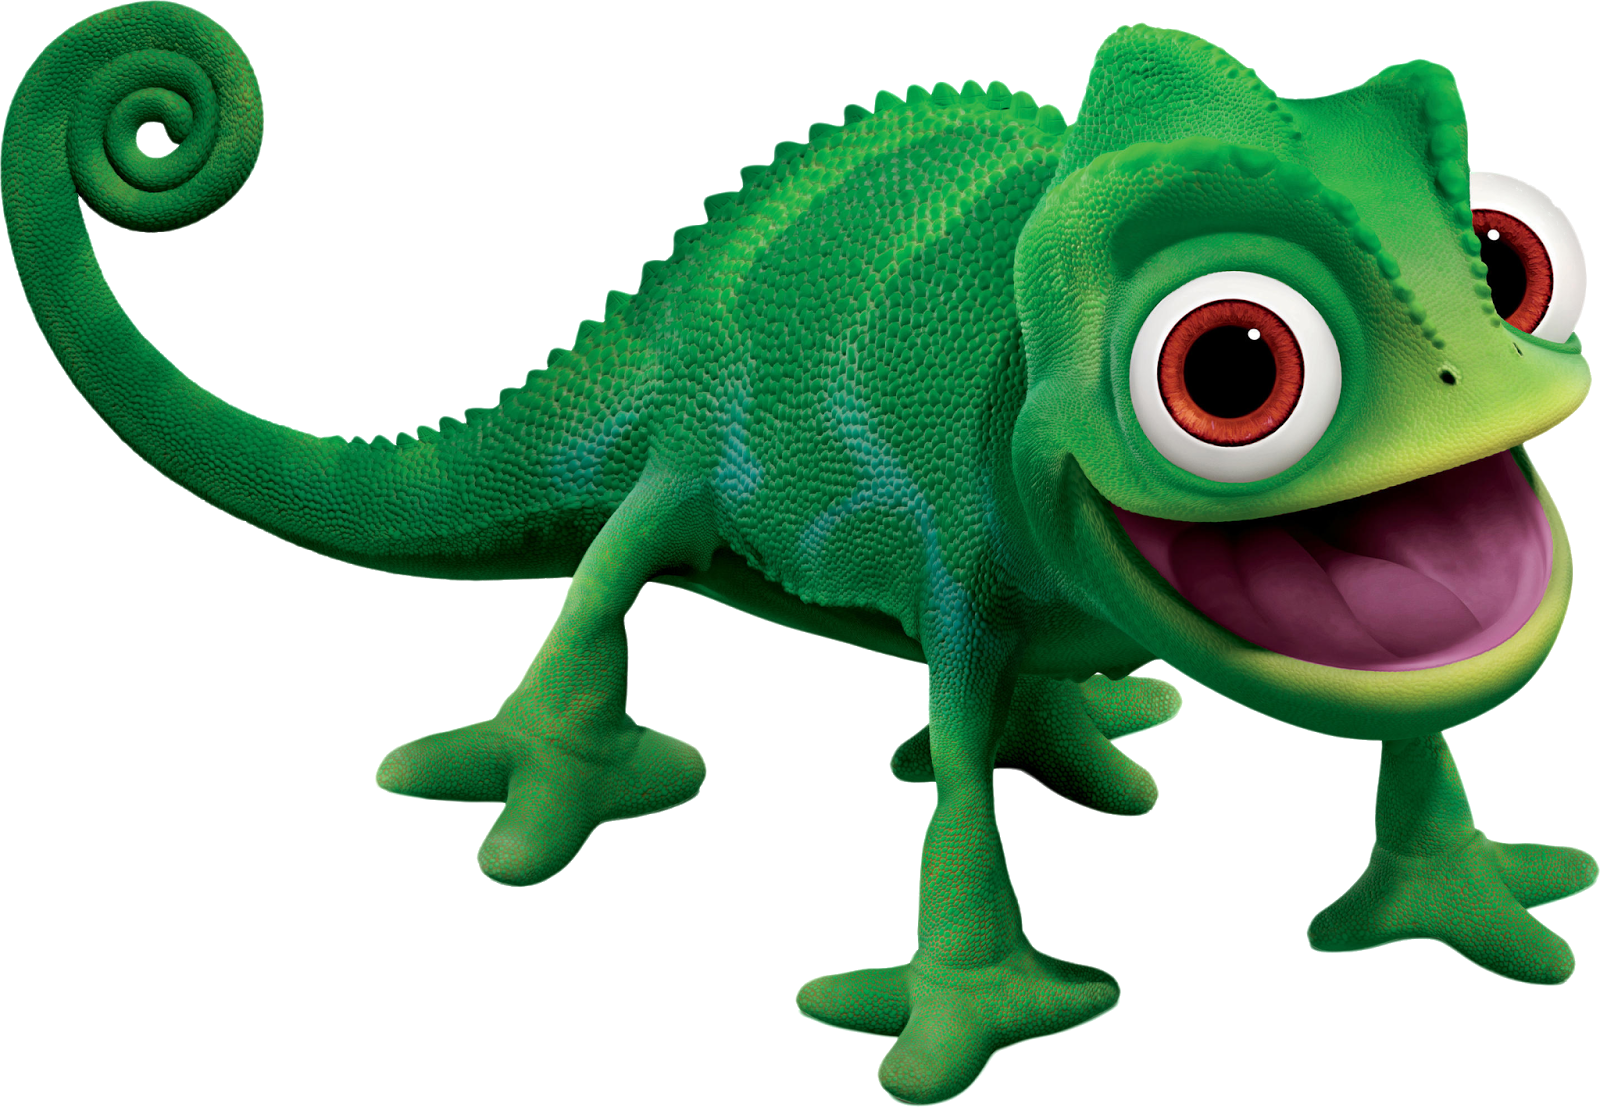 Reptile Chameleon Game Video Rapunzel Tangled The PNG Image